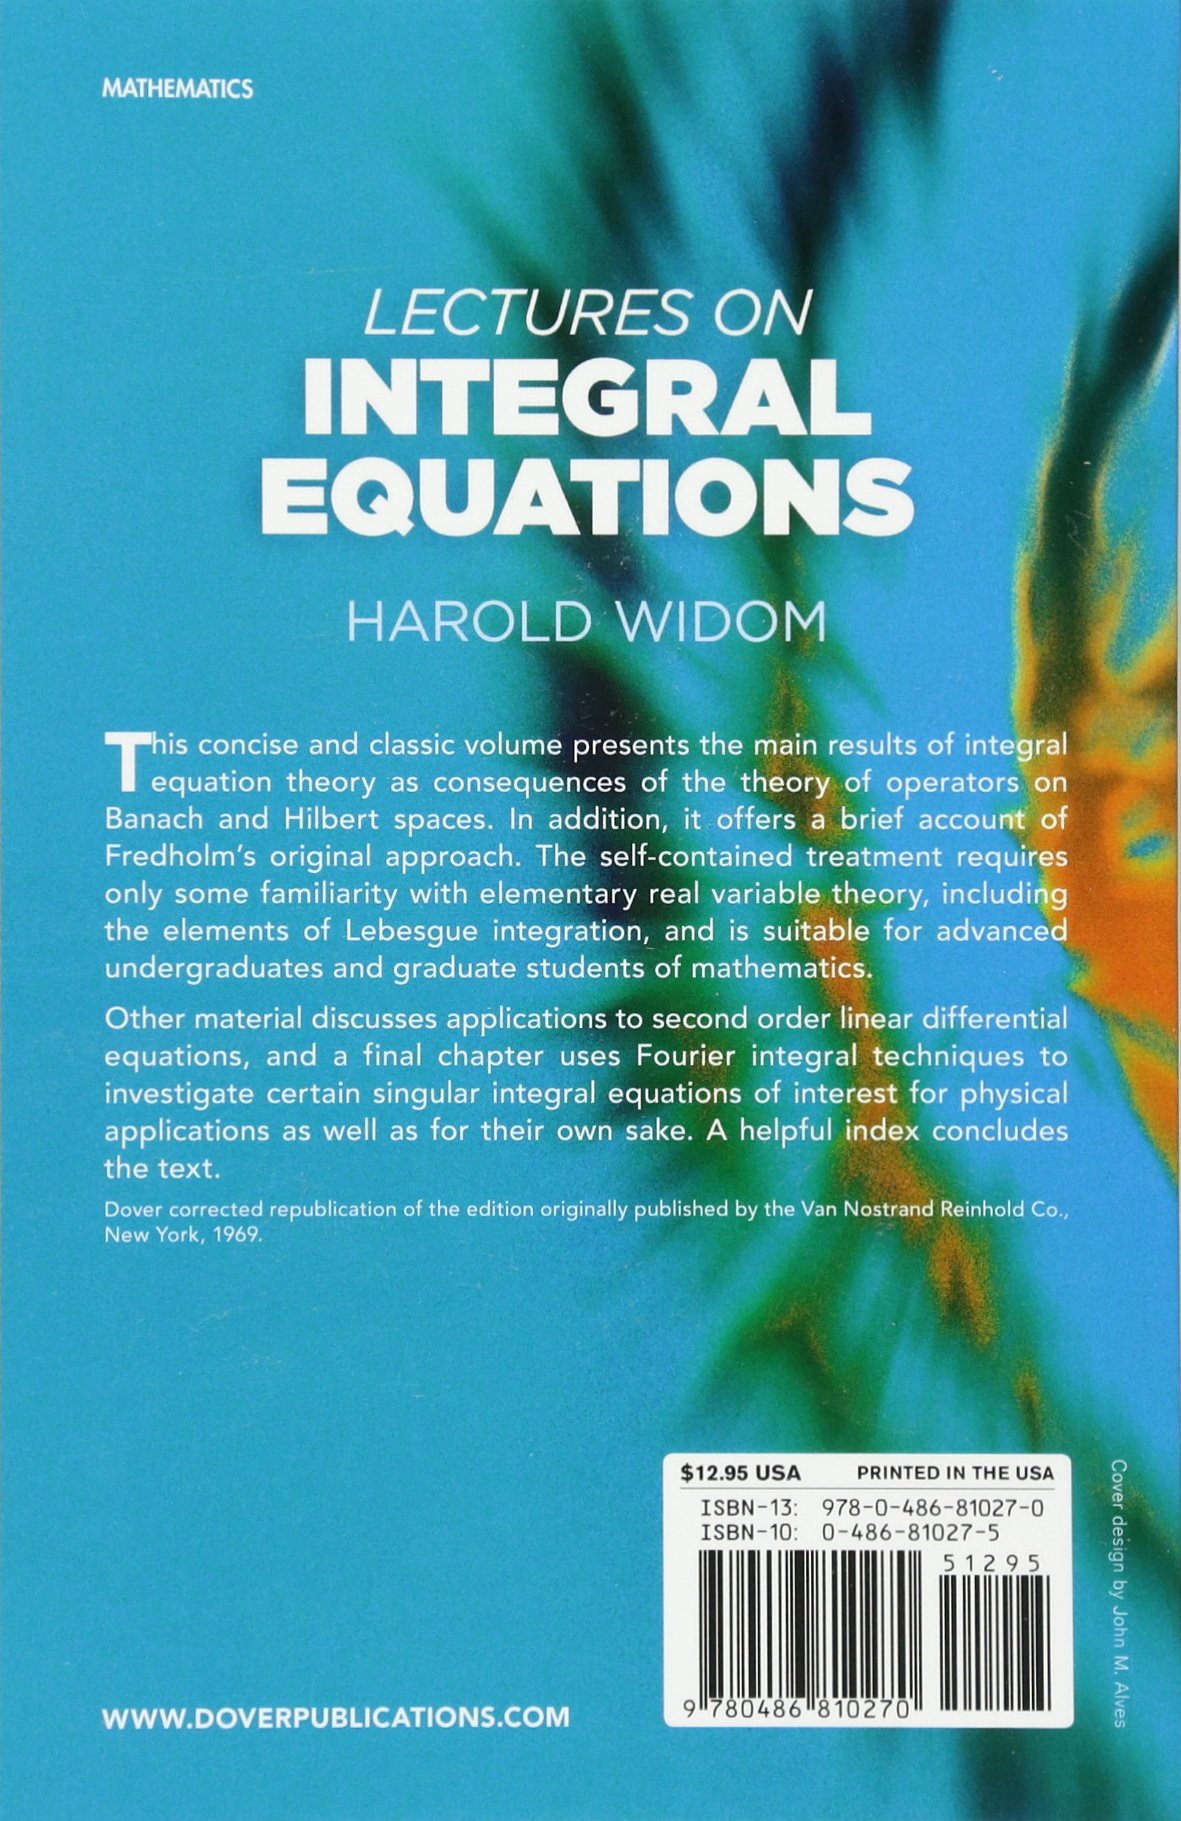 Lectures on integral equations dover books on mathematics harold lectures on integral equations dover books on mathematics harold widom 0800759810277 amazon books fandeluxe Image collections